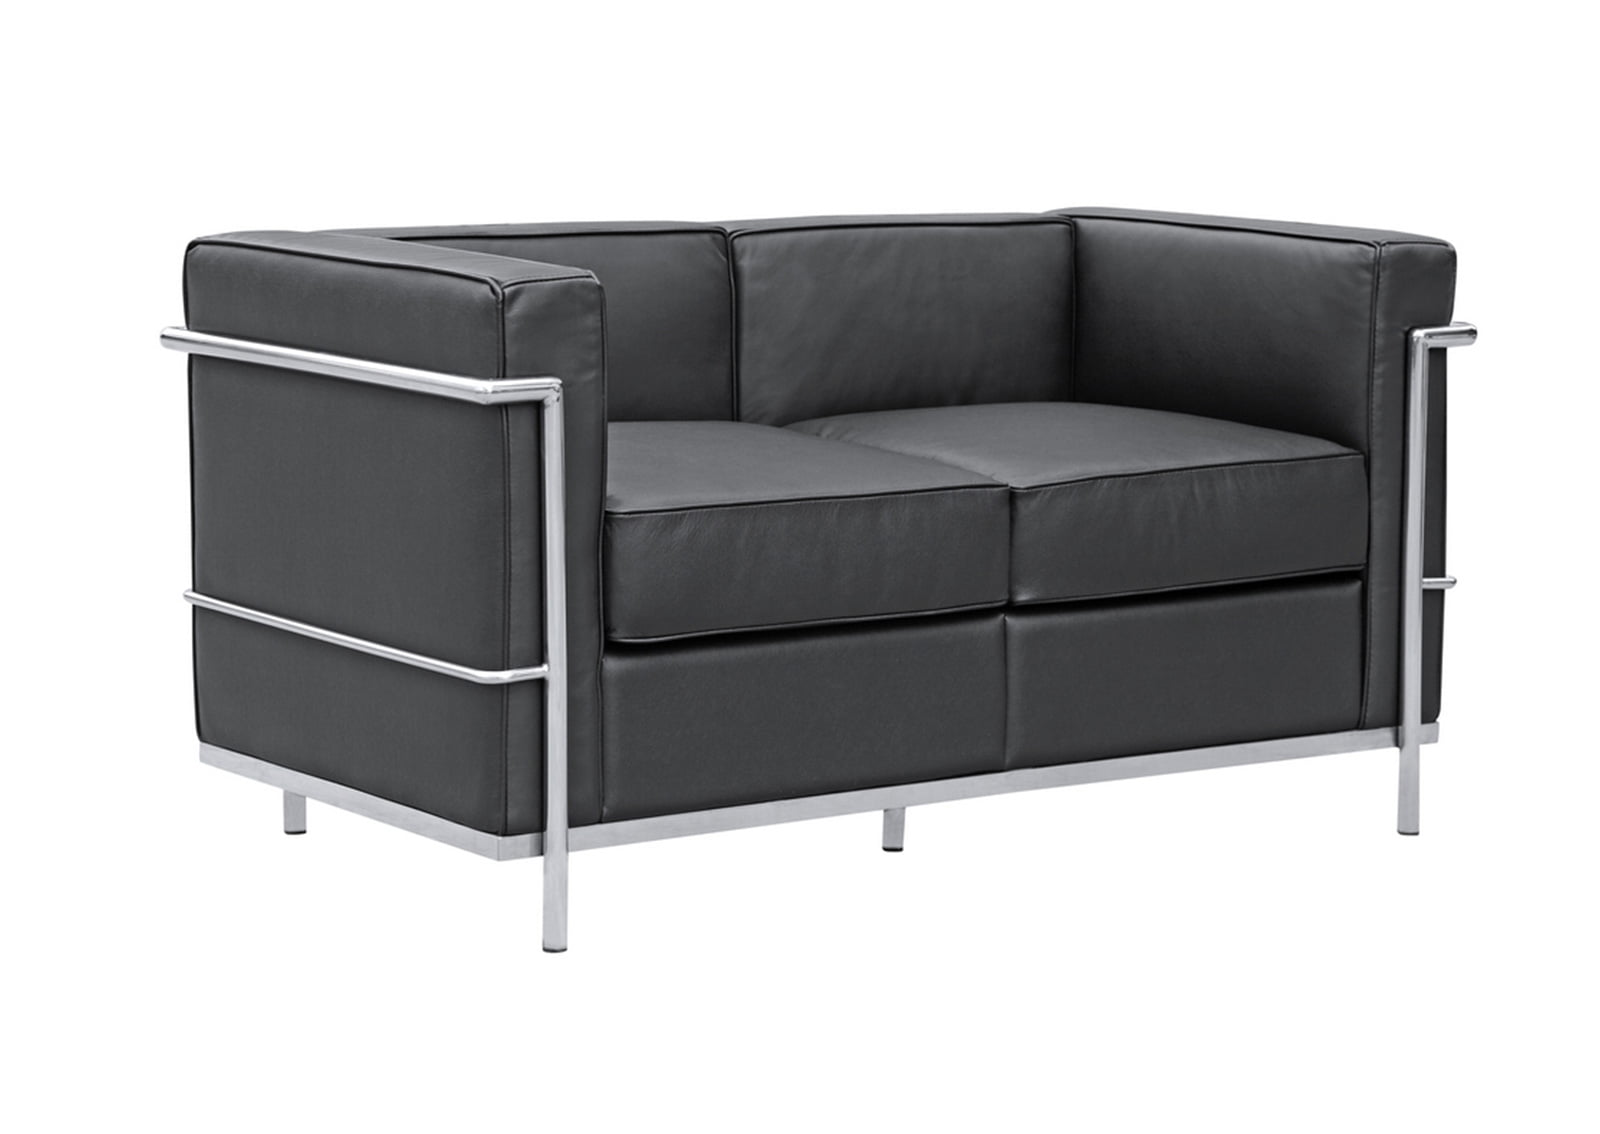 Lc2 loveseat le corbusier style furnishplus for Le corbusier lc2